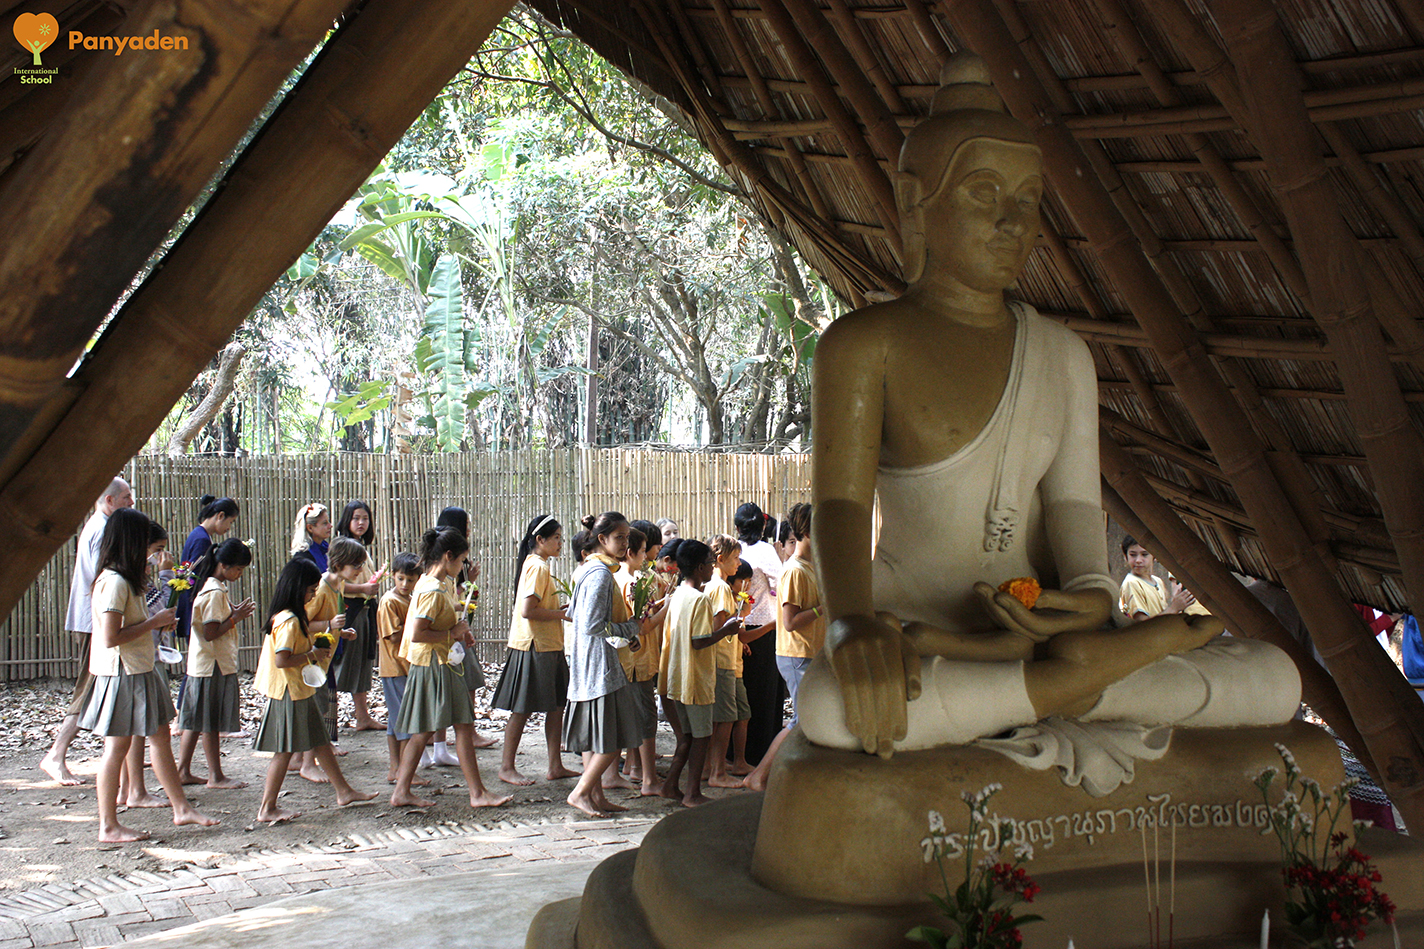 Panyaden students and staff circumbulate the school's Buddha Sala as part of Makha Bucha Day 2018 celebrations